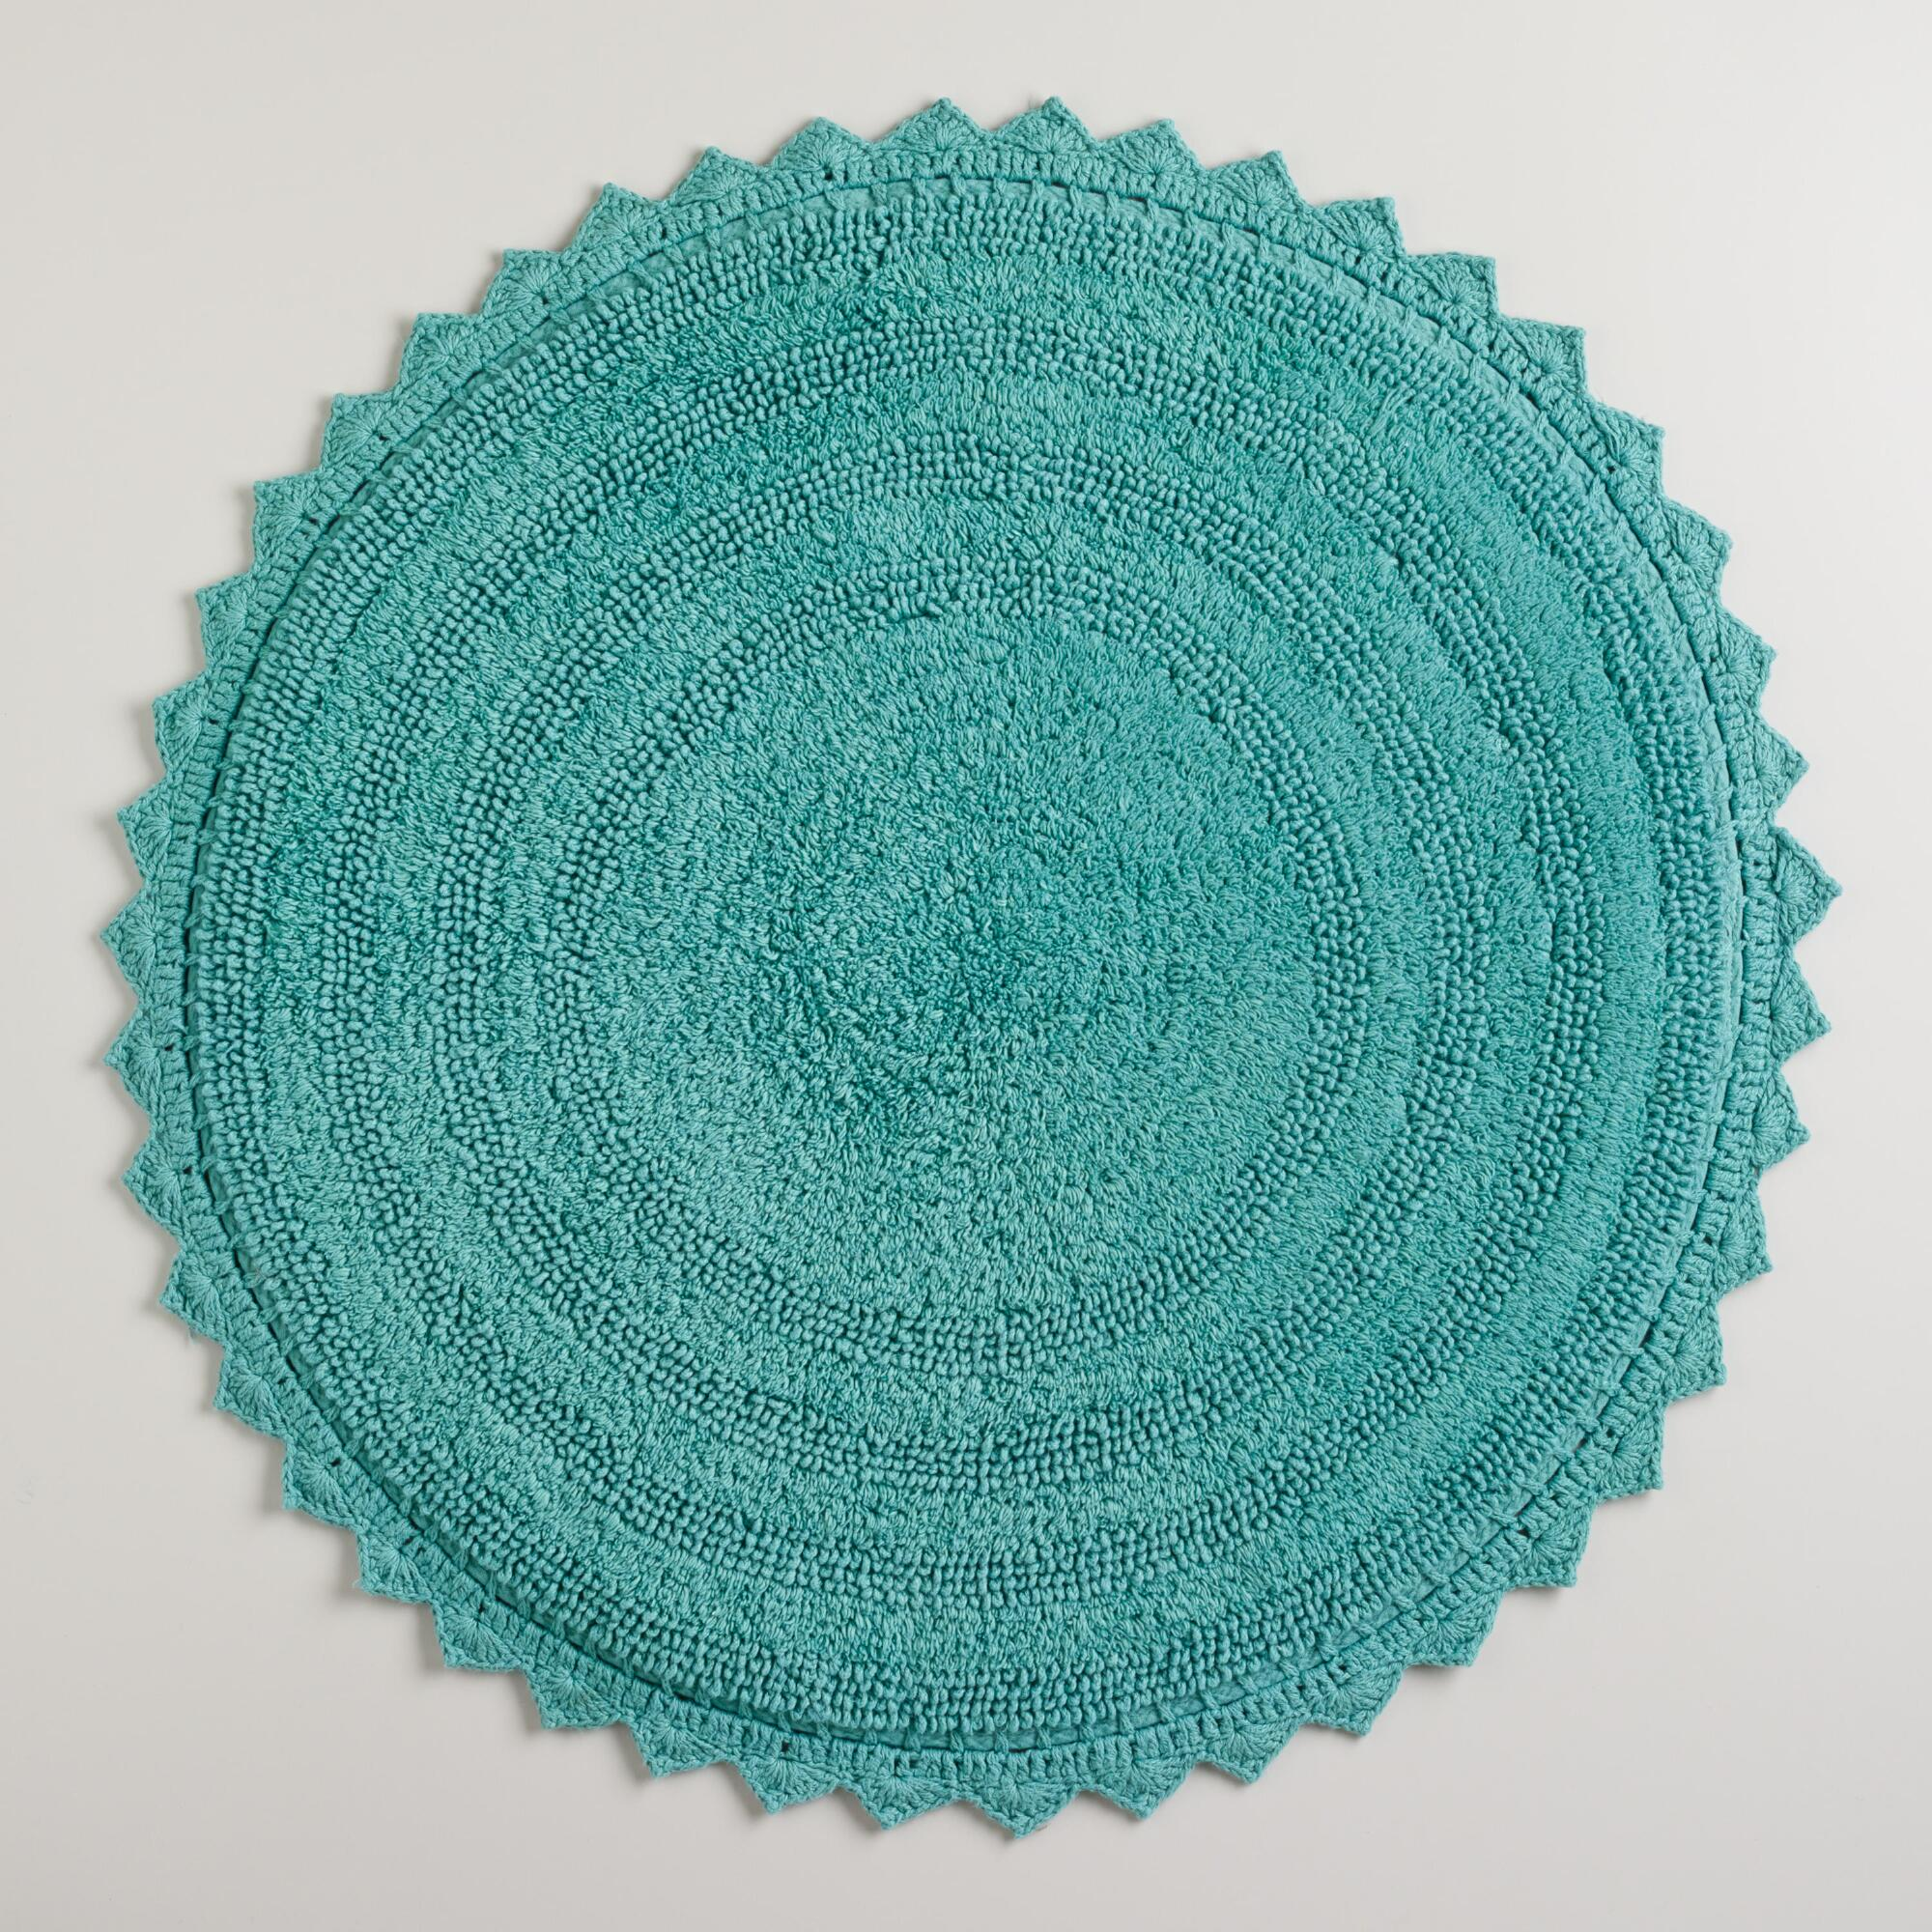 Beryl Green Round Bath Mat World Market